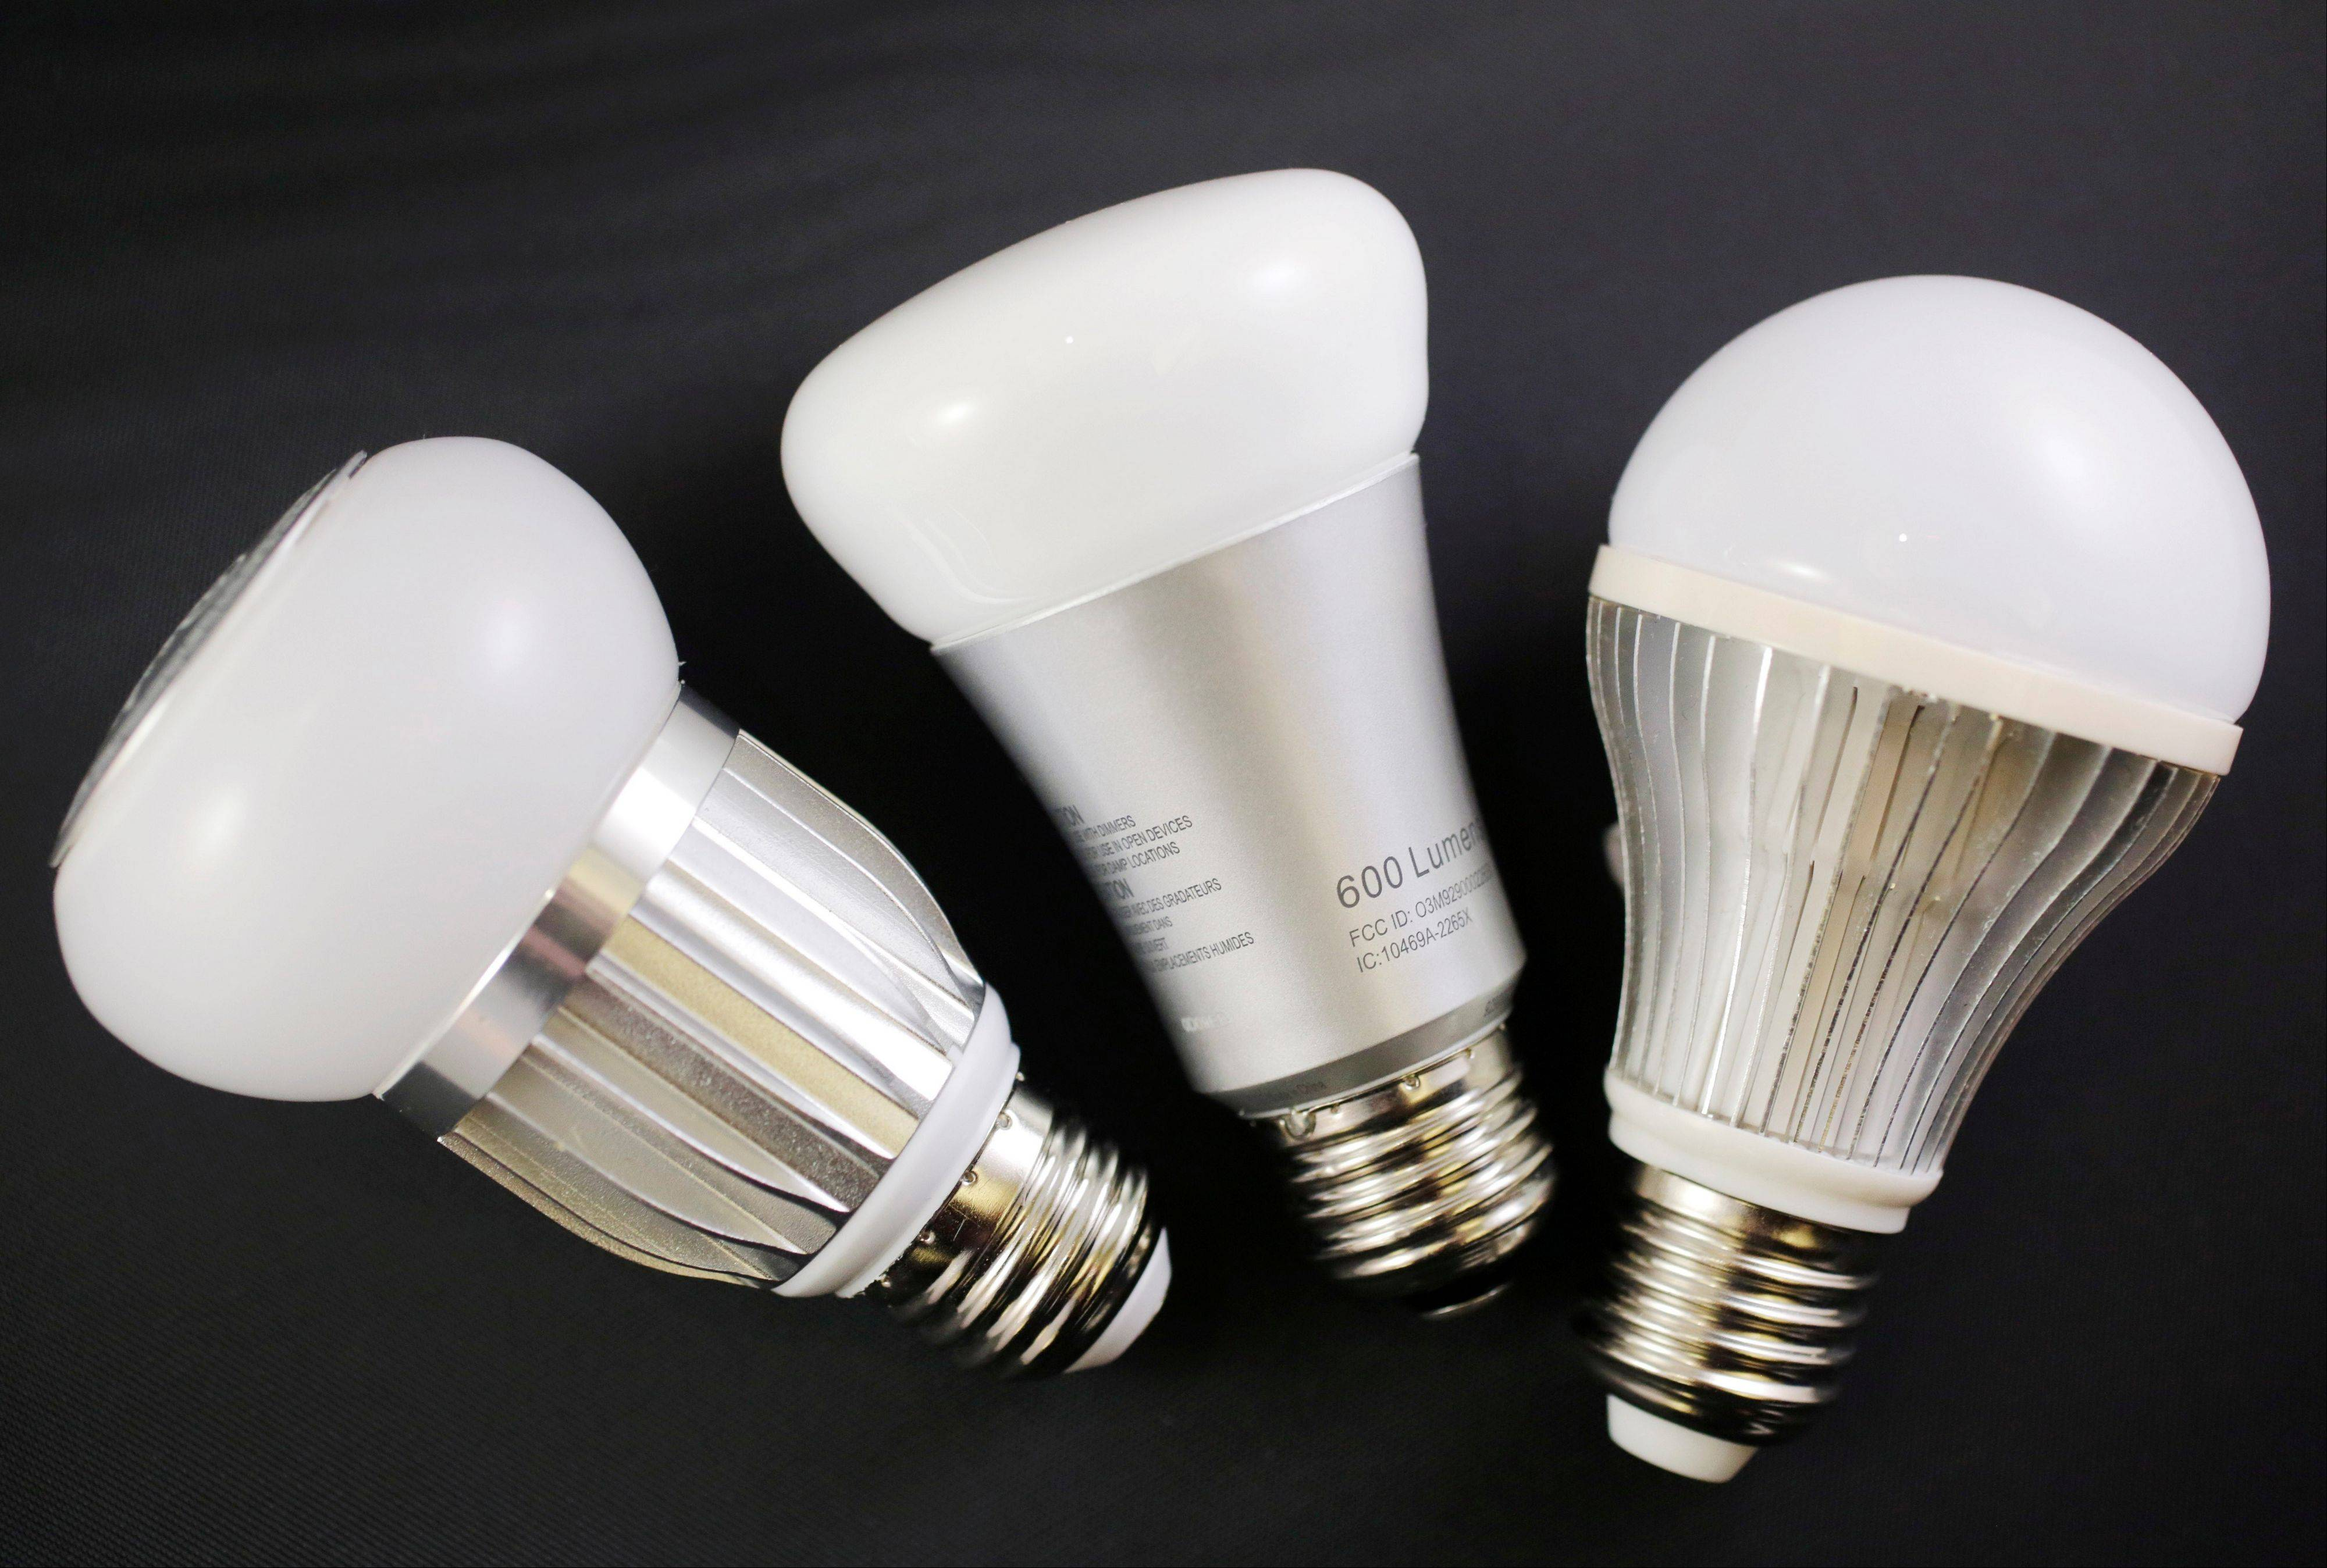 LED bulbs seem to be the future of home lighting: They save electricity, they're durable and they don't contain mercury, which compact fluorescents do. But having them pump out white light like any old light bulb is sort of like using a computer as a doorstop.